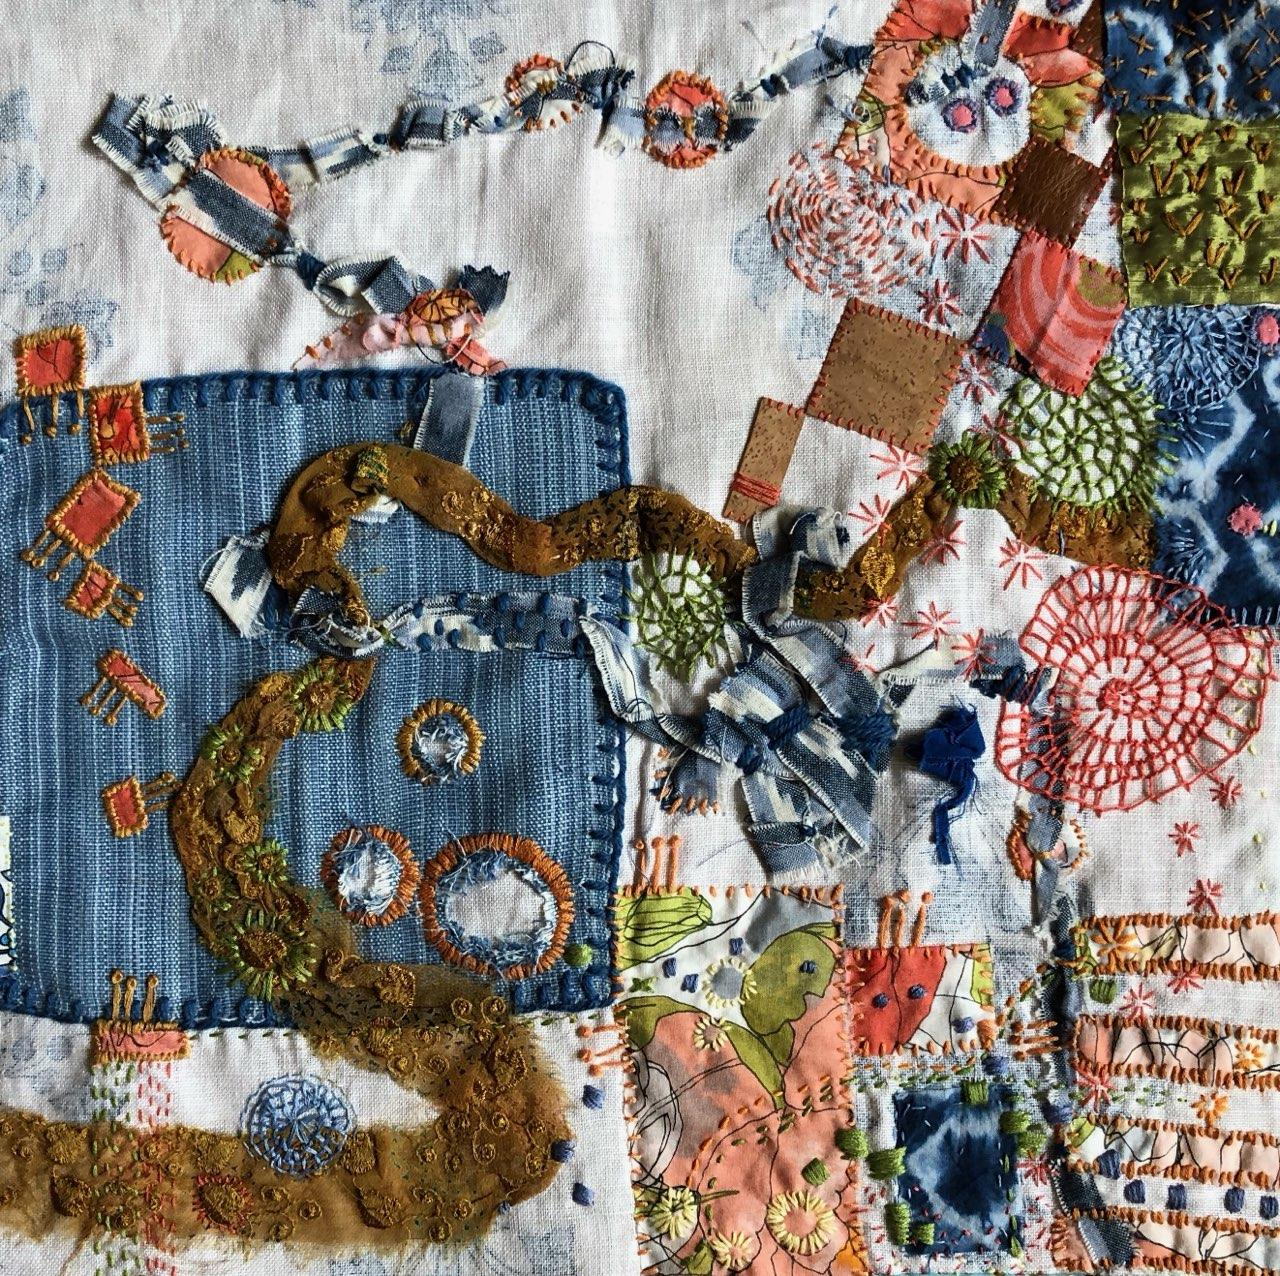 Collaborative work by Kay Portmess and Maura Harrison (MG: July 2020)